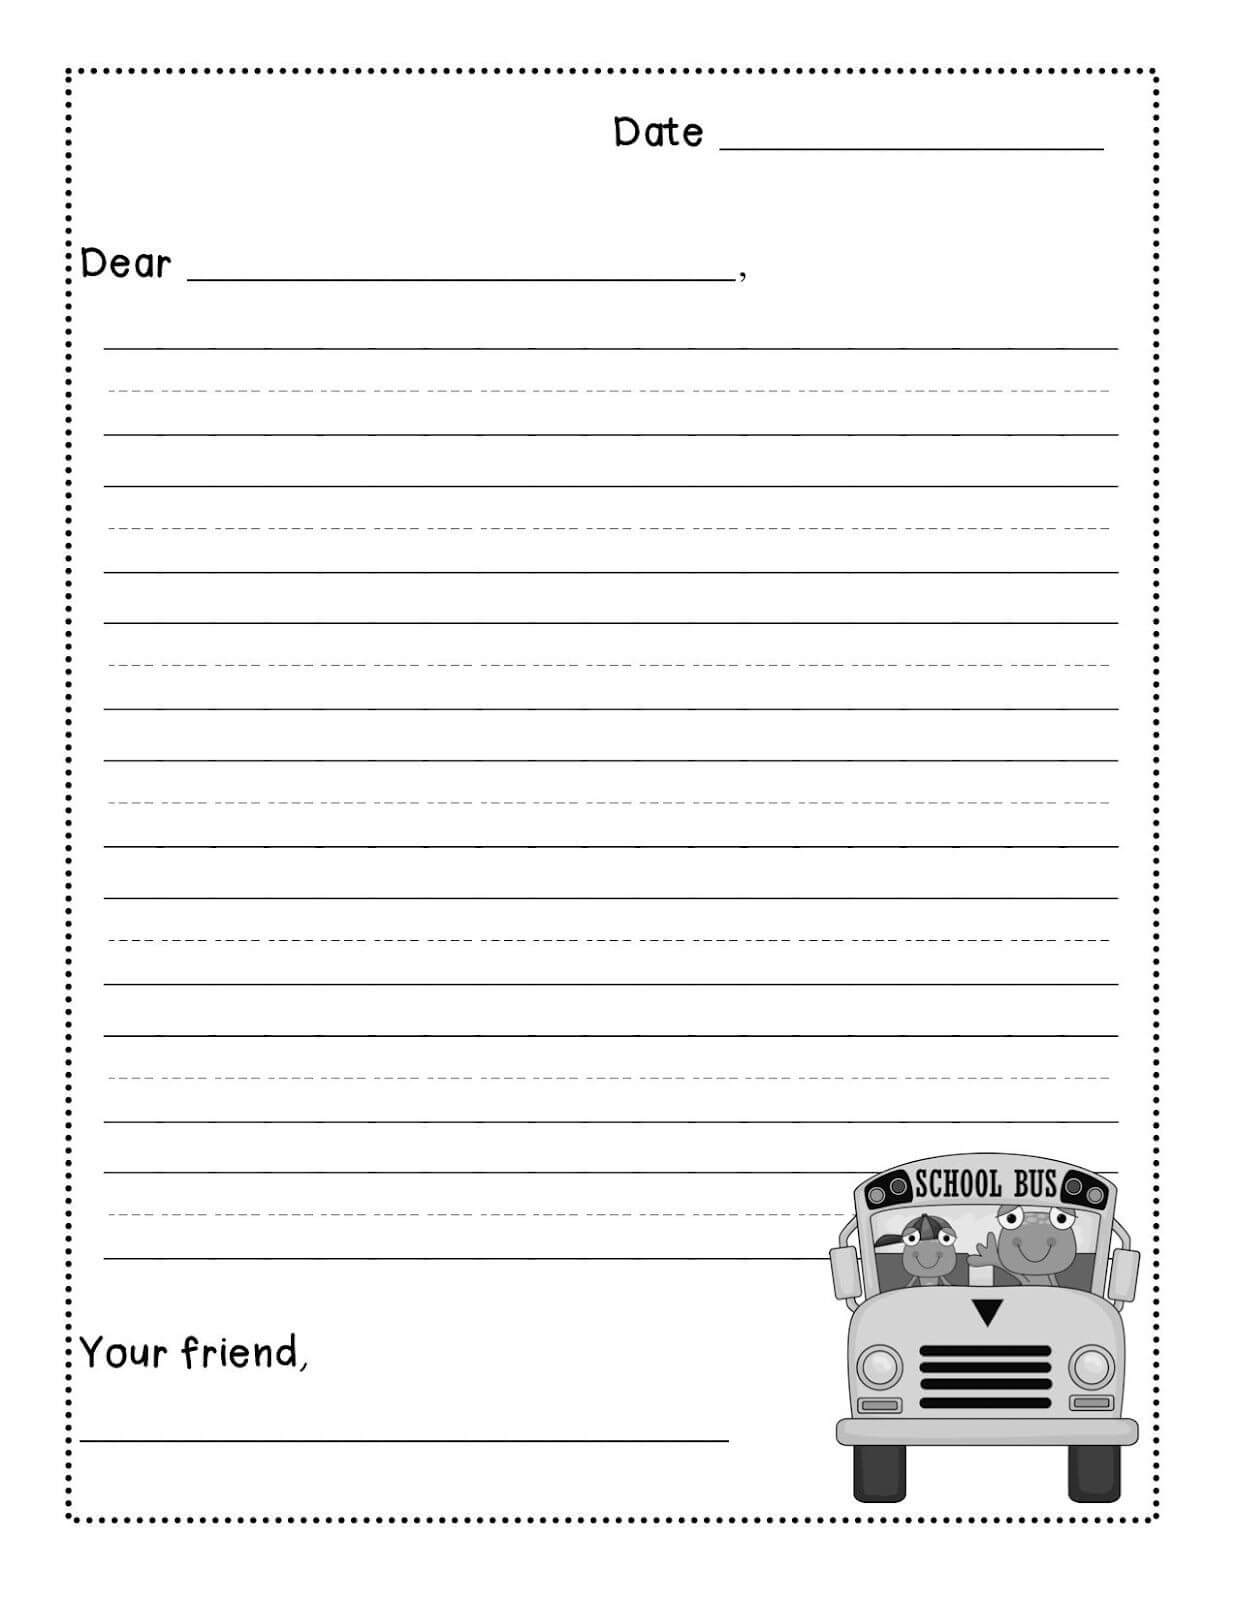 Friendly Letter Writing Freebie - Levelized Templates Up For Regarding Blank Letter Writing Template For Kids